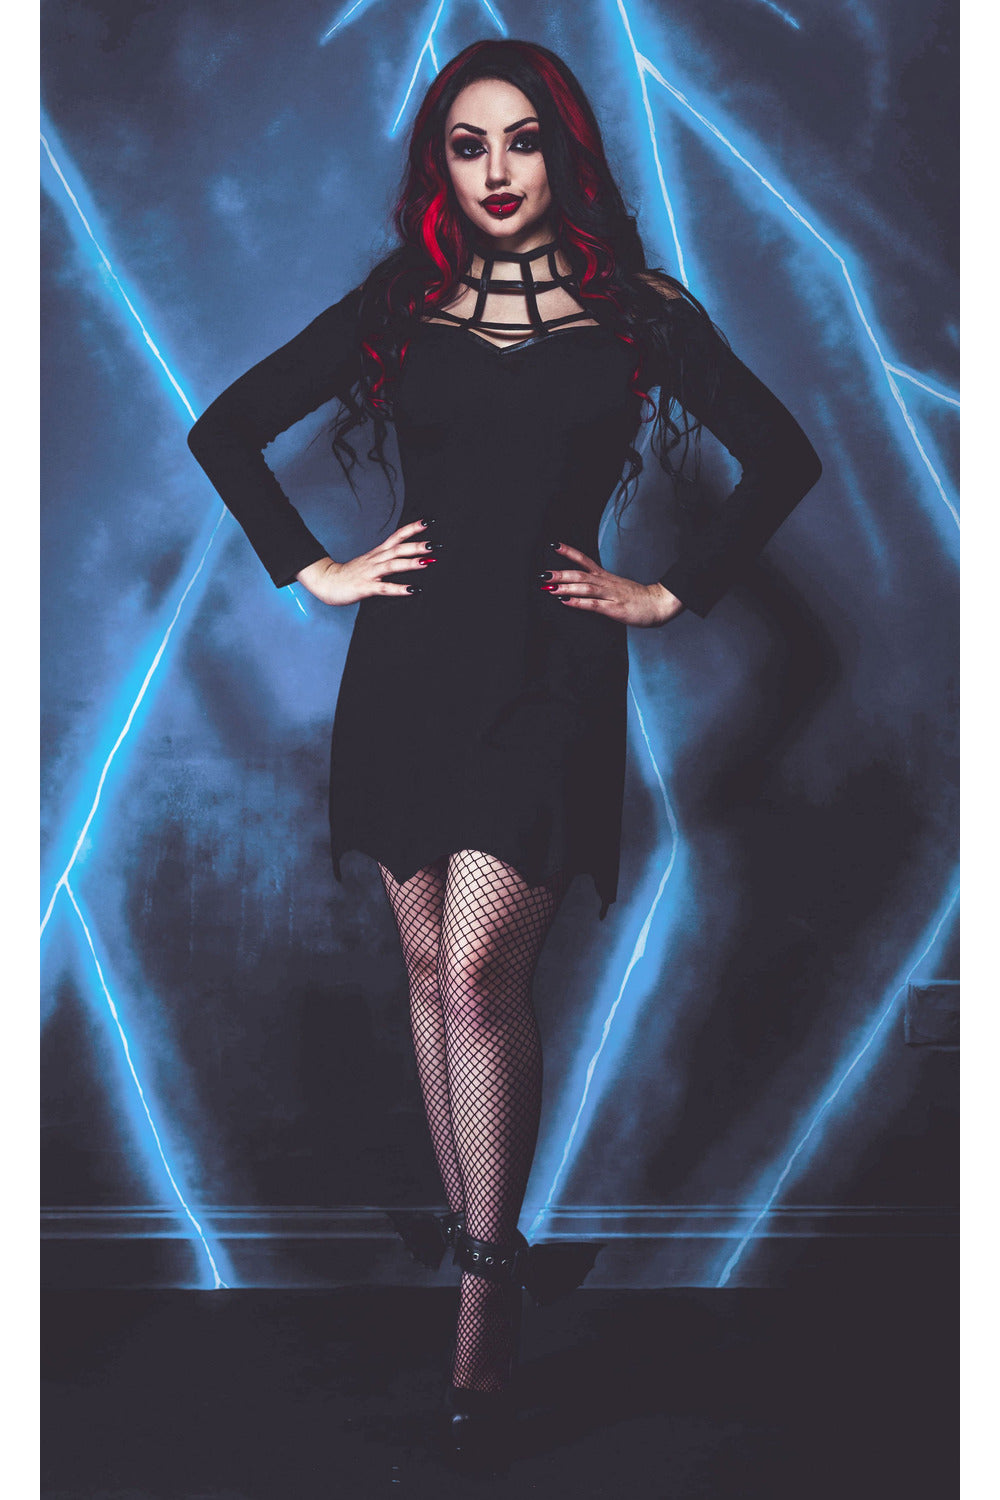 Spiderweb Mini Dress - High Voltage Clothing & Accessories Ltd